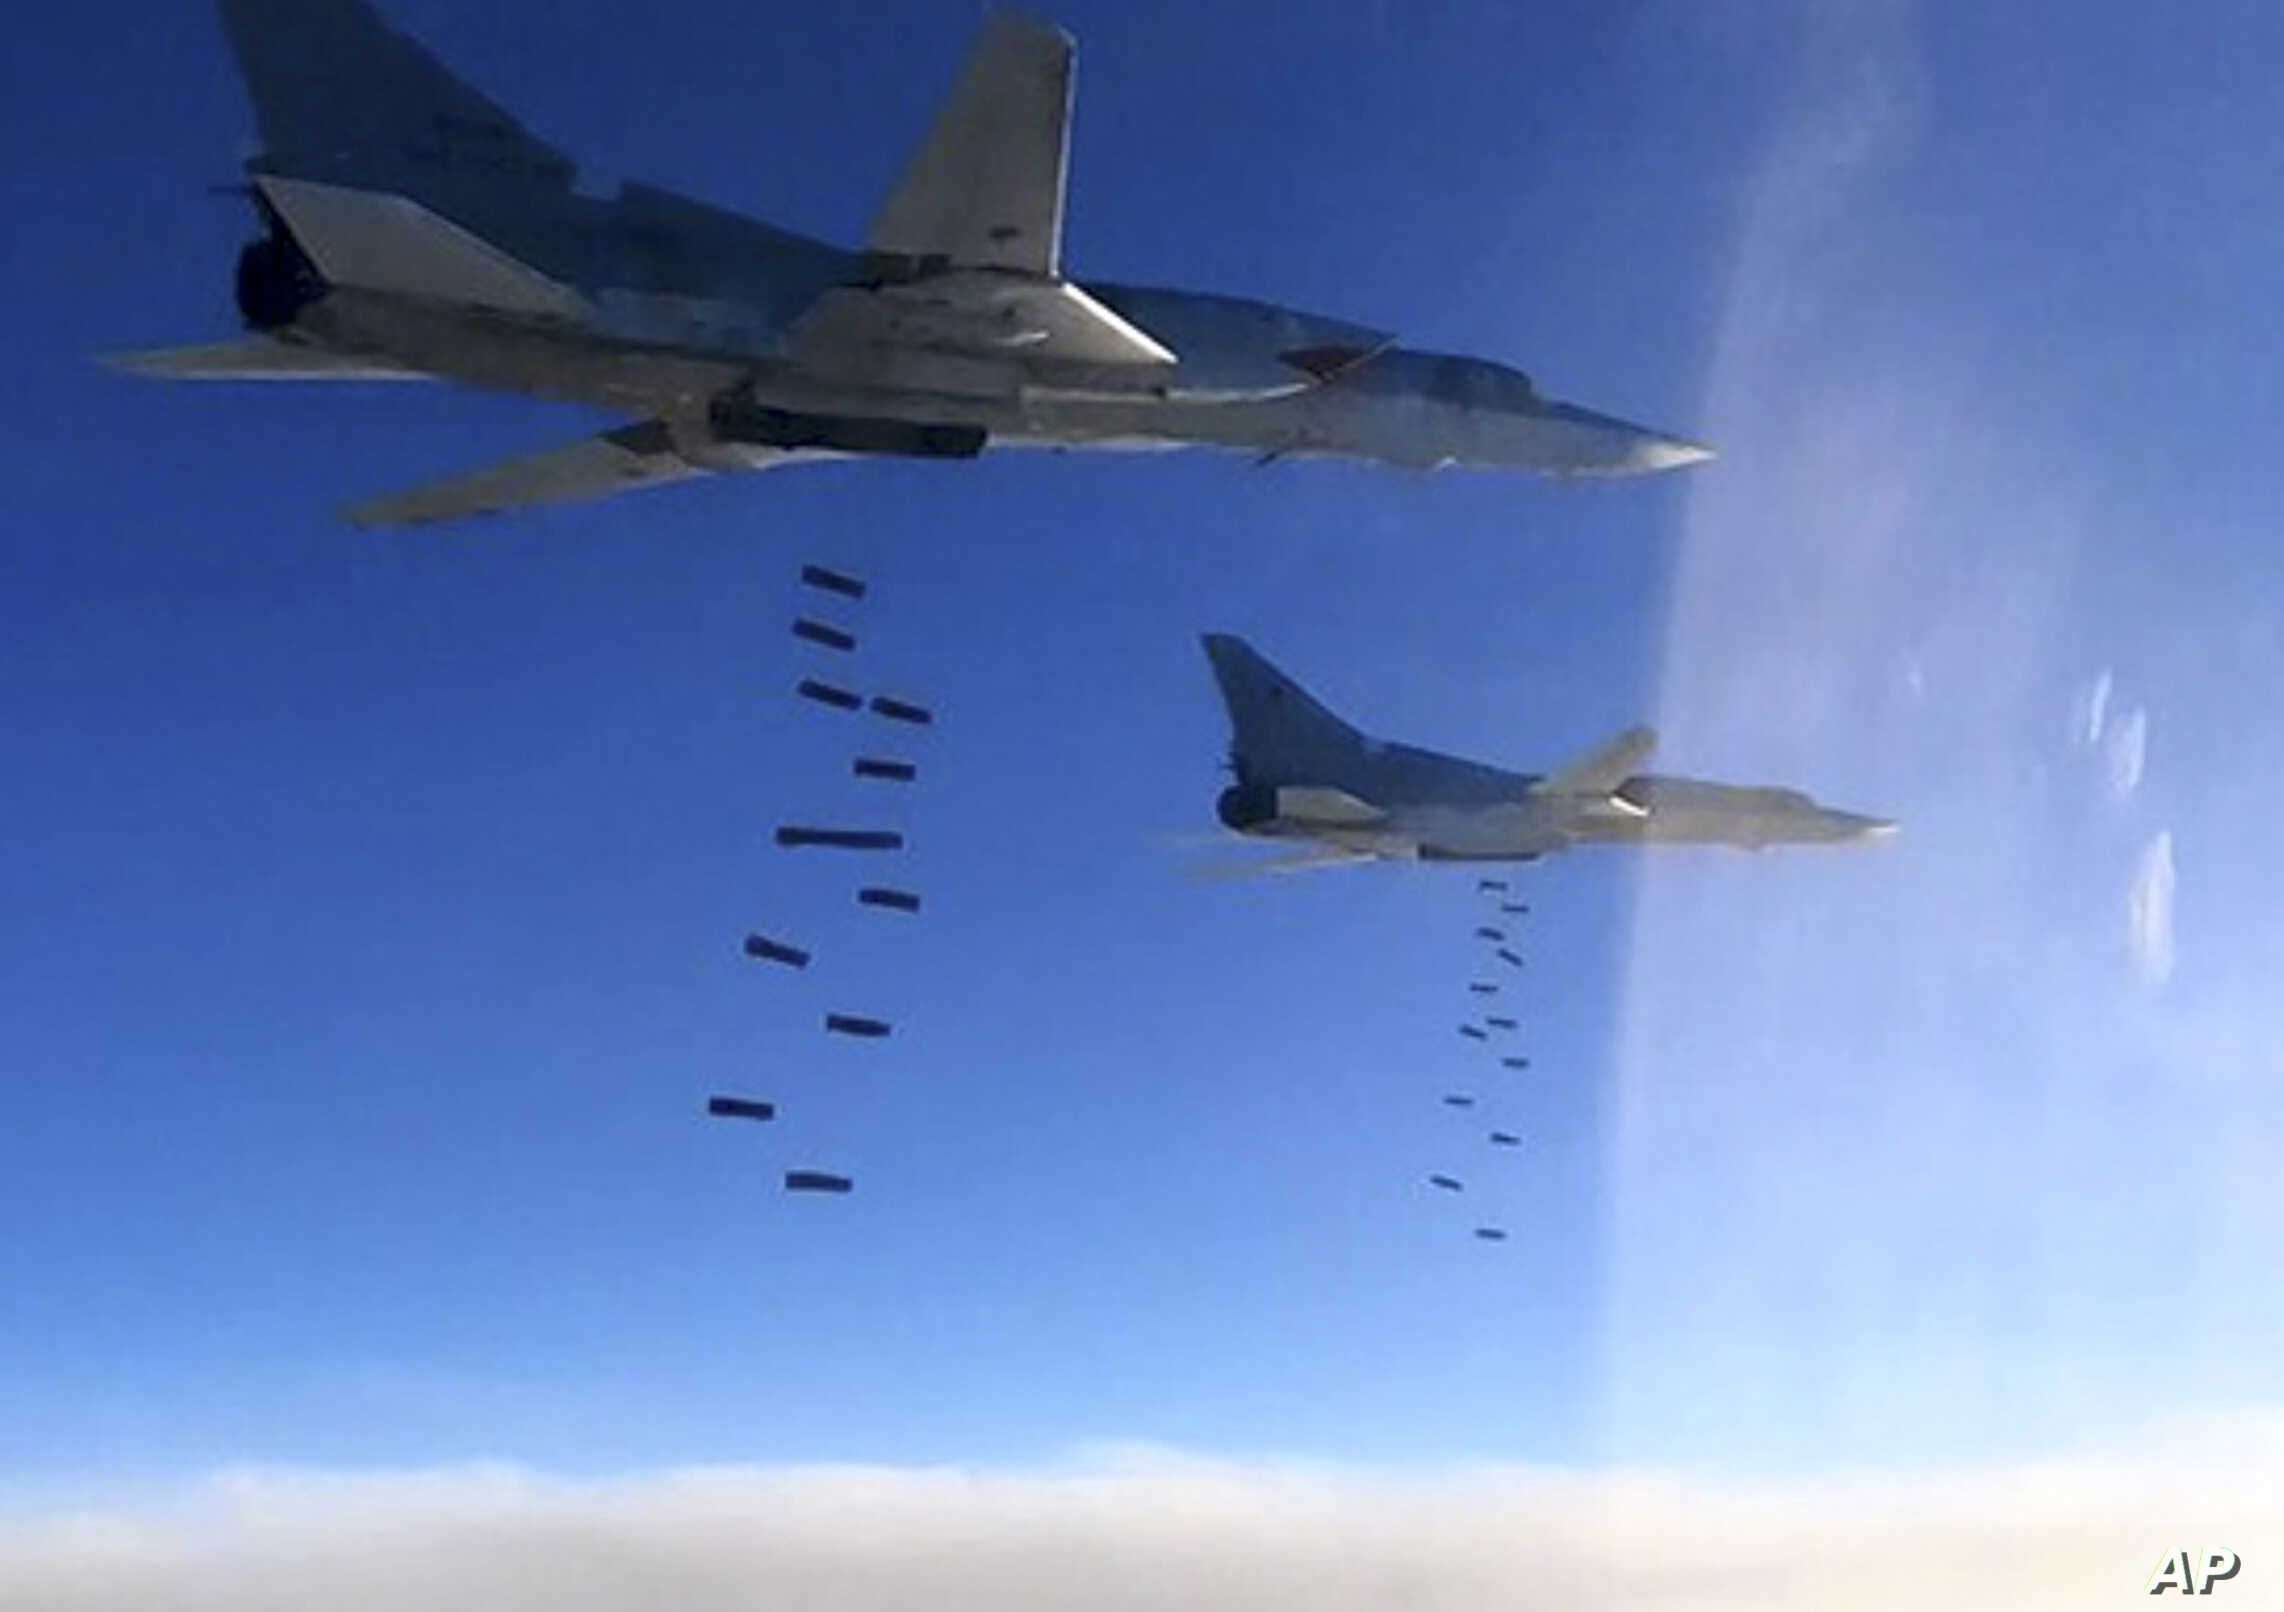 This photo provided by the Russian Defense Ministry Press Service purportedly shows Russian air force Tu-22M3 bombers striking Islamic State group targets in Syria, Jan. 23, 2017.